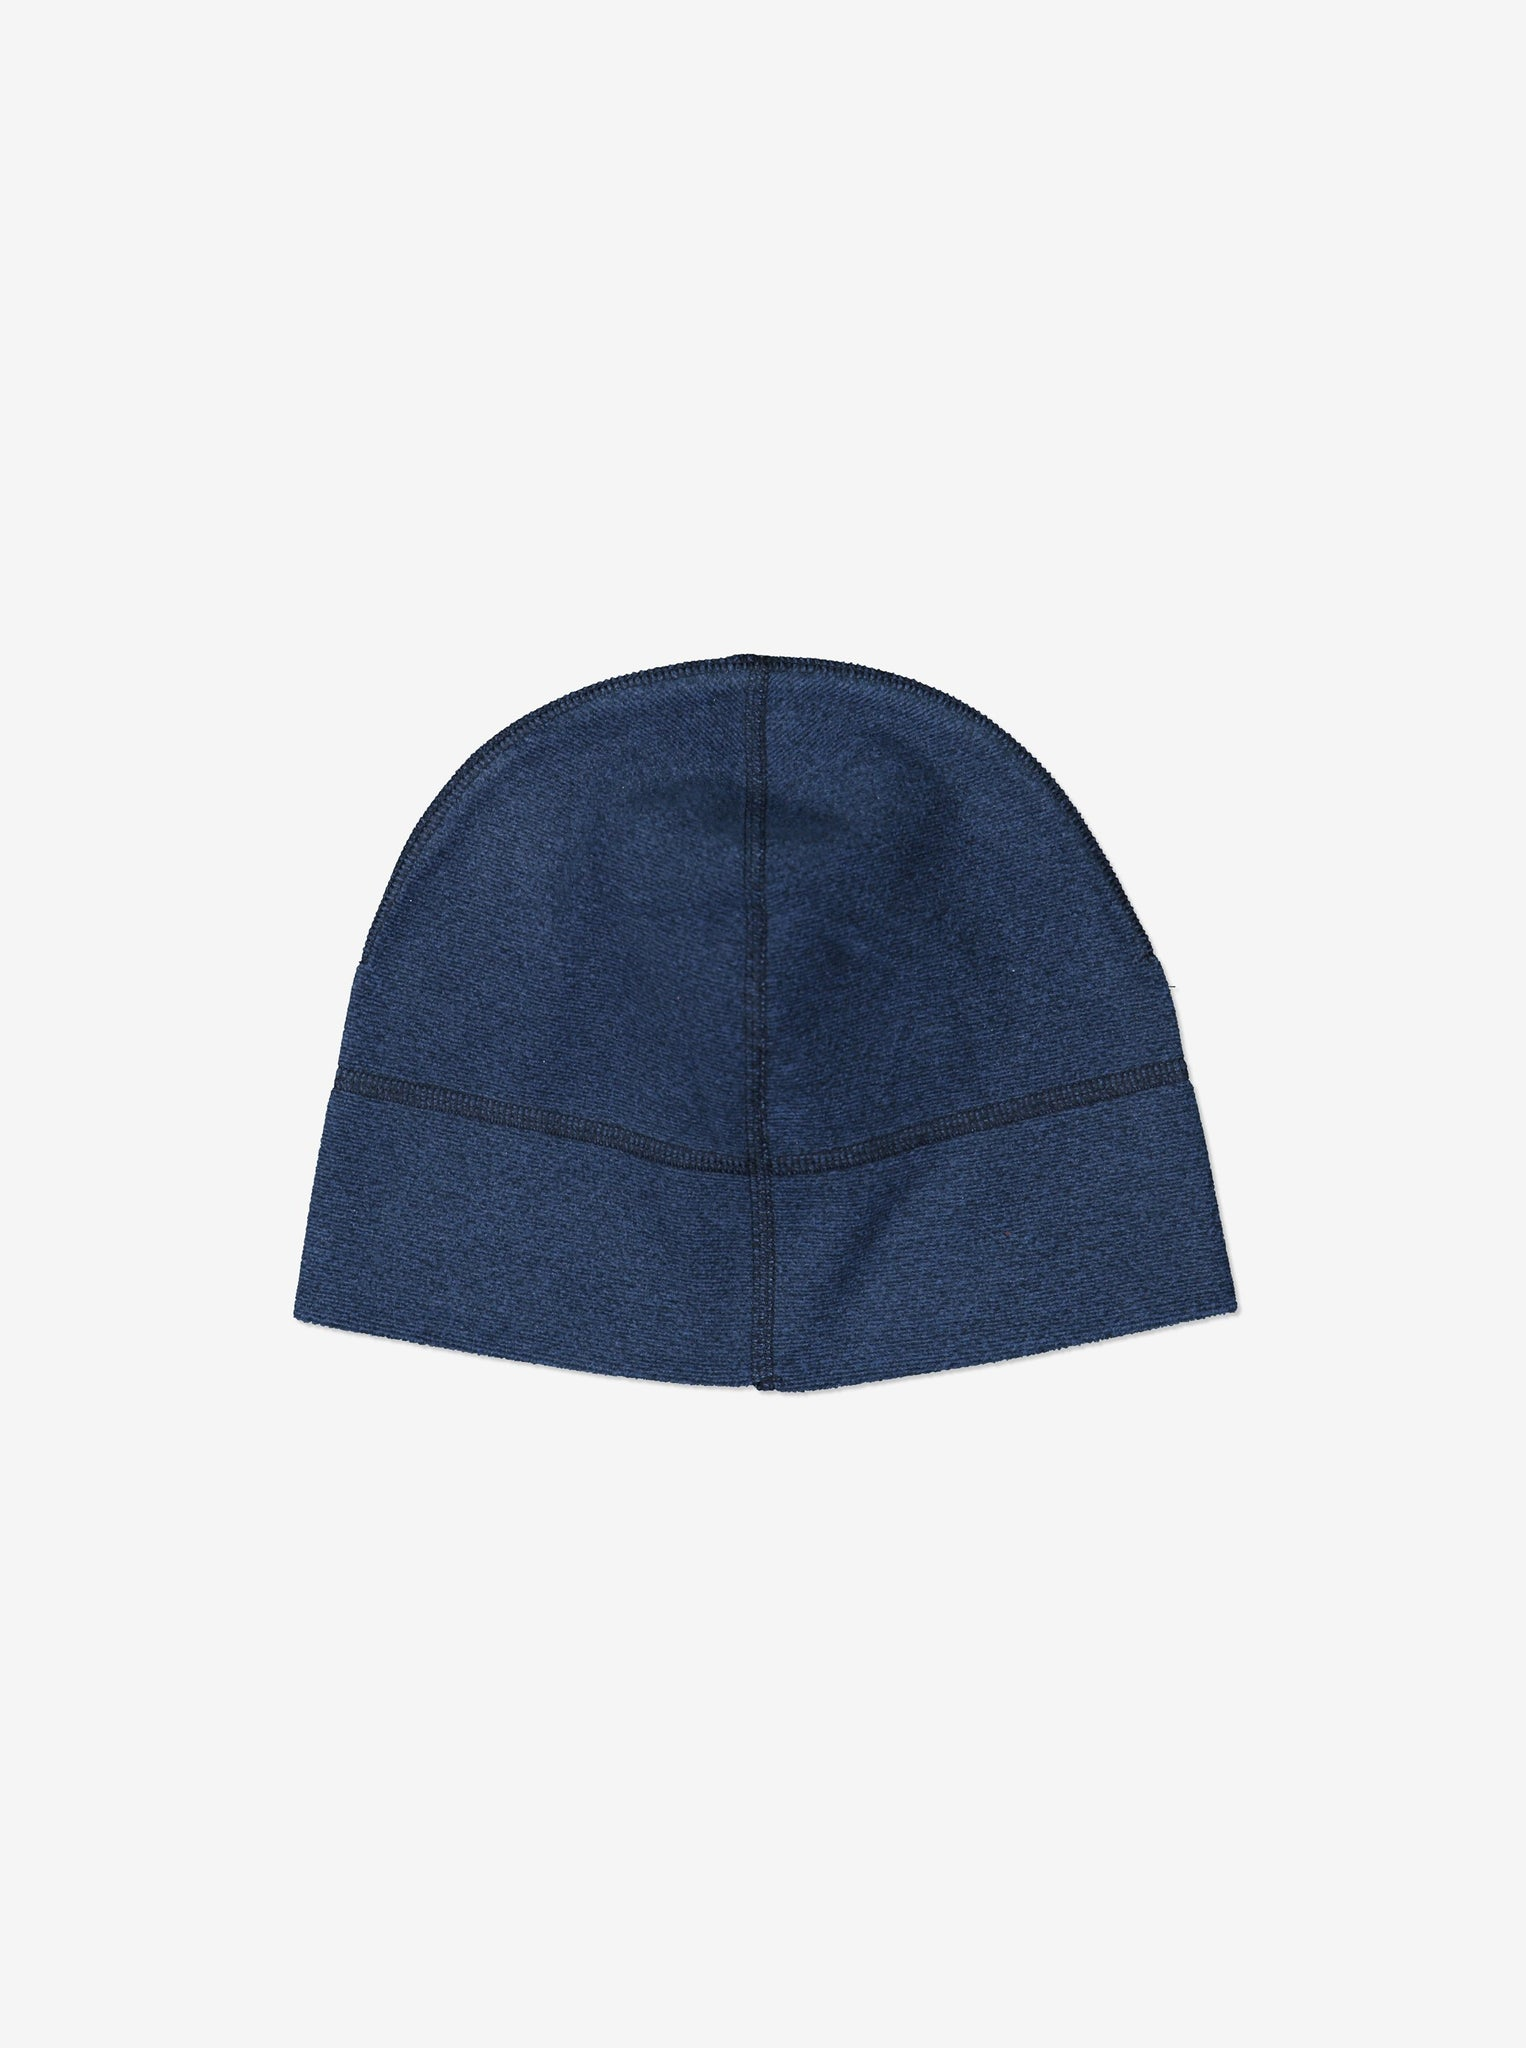 Kids Blue Fleece Lined Beanie Hat